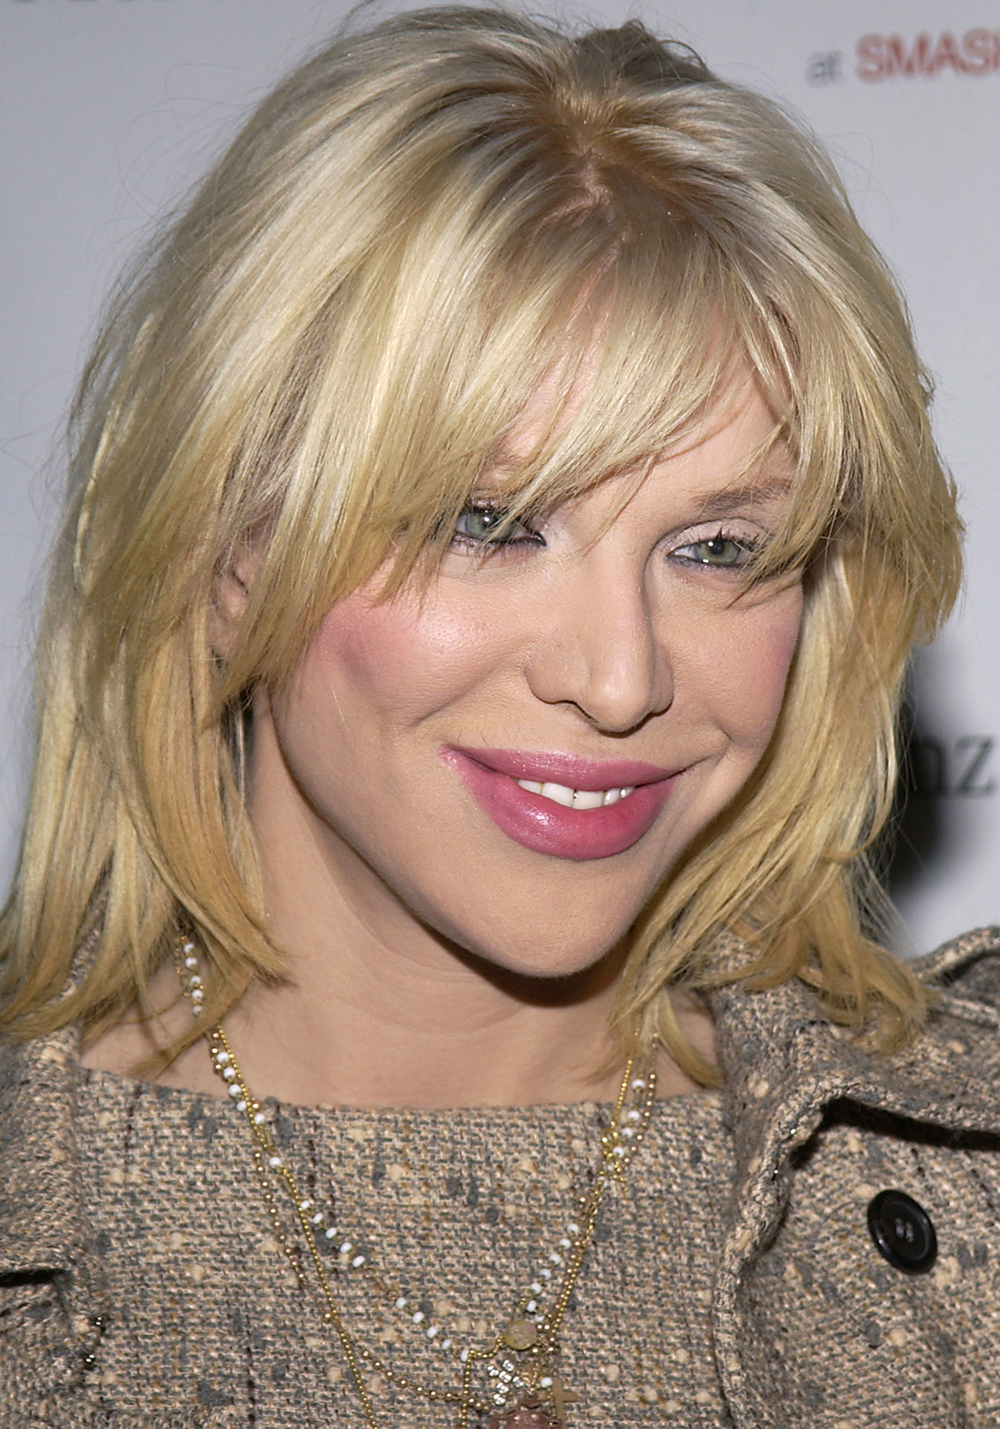 Courtney Love 1.jpg